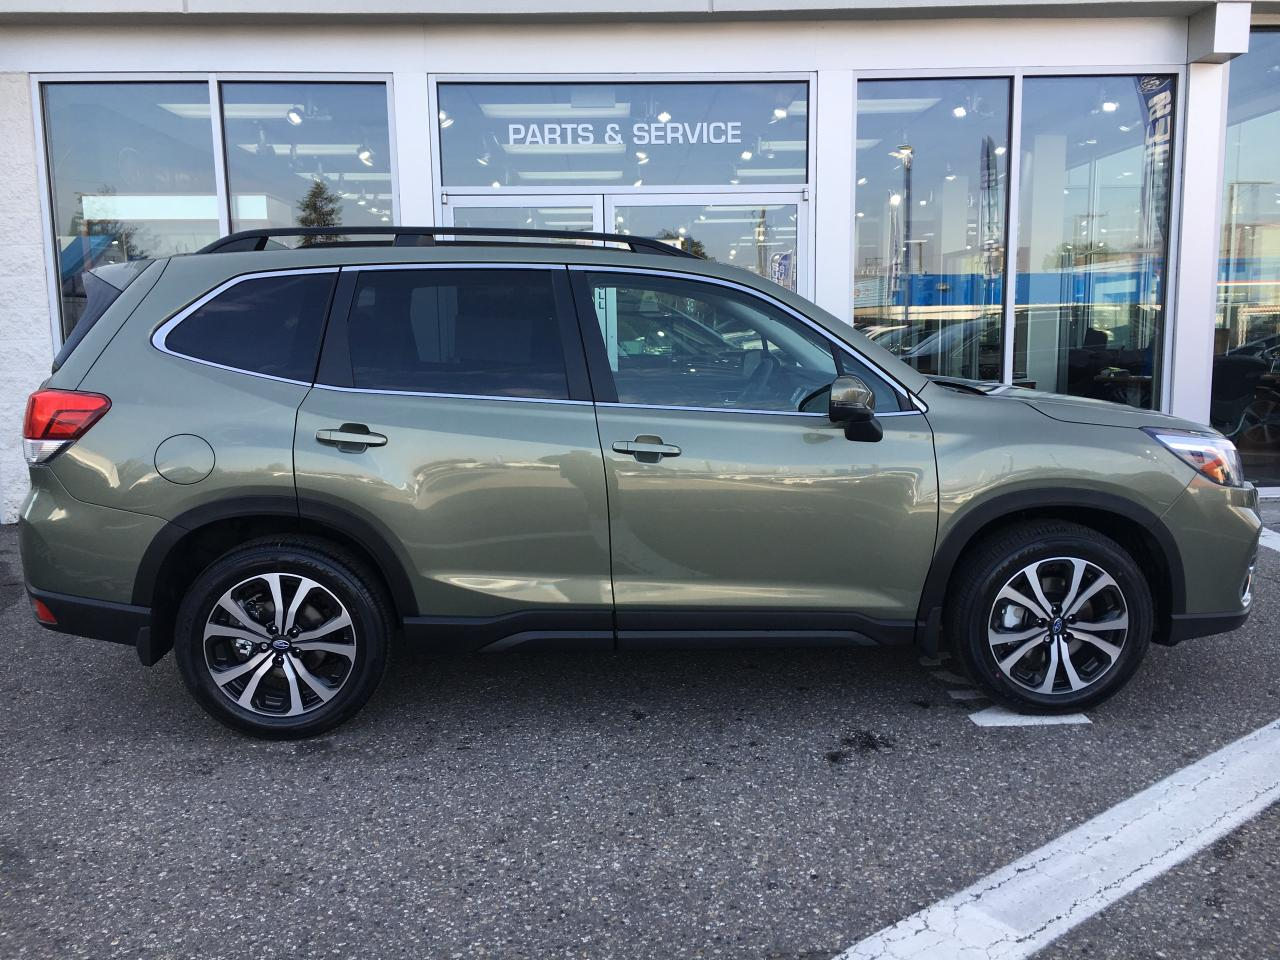 2019 Subaru Forester Limited Amp Eyesight In Vernon Hilltop Subaru